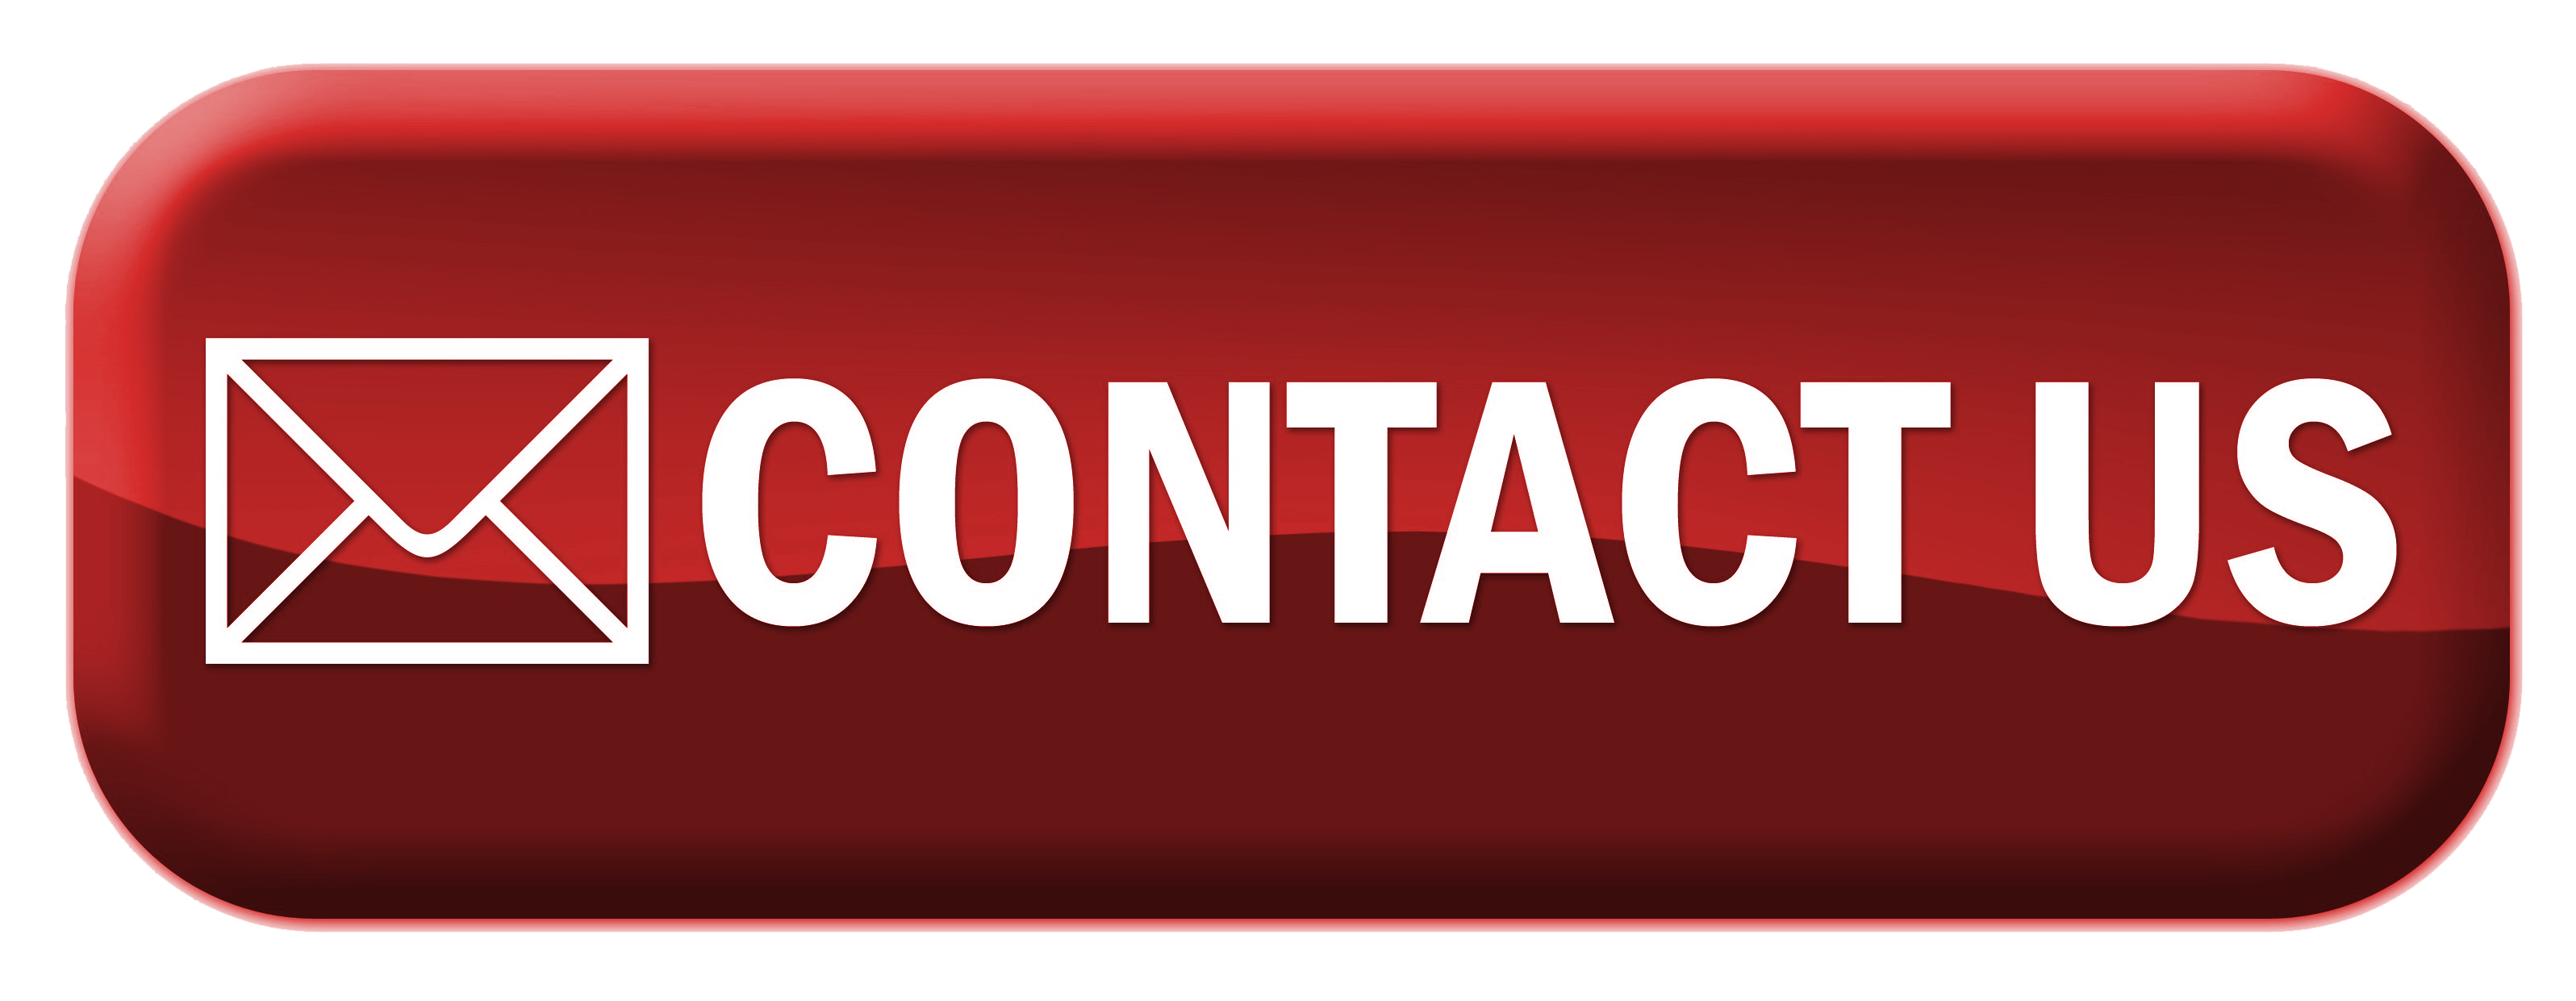 Contact Us Red >> Contacts – Wickersley St Alban's CE Primary